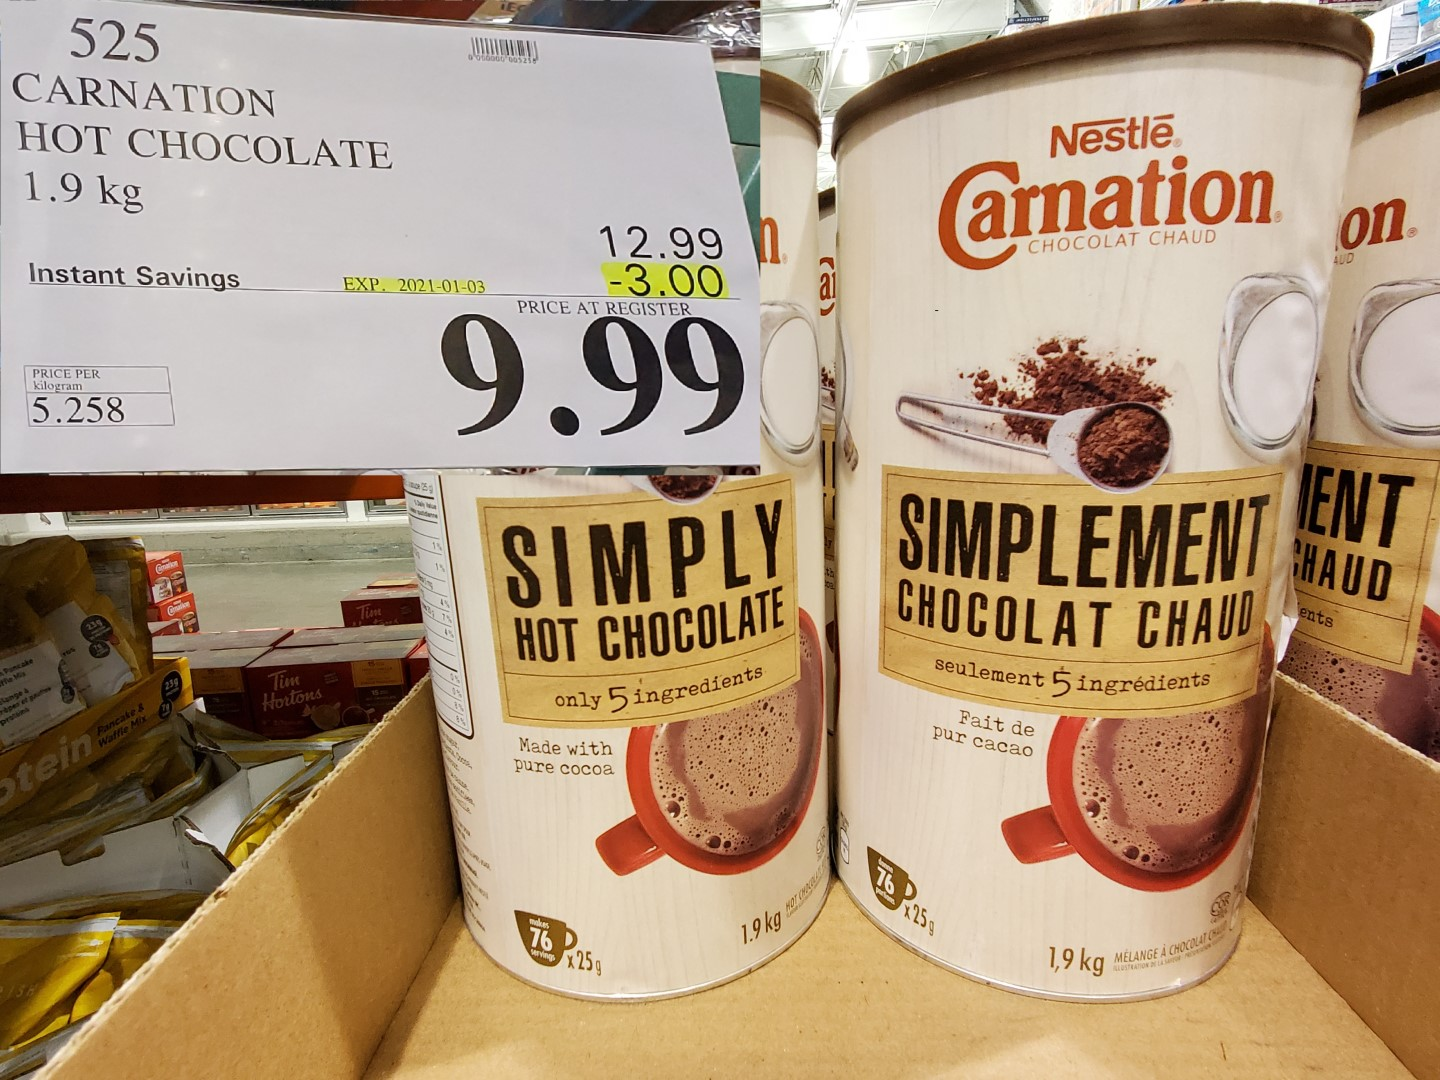 carnation simply hot chocolate